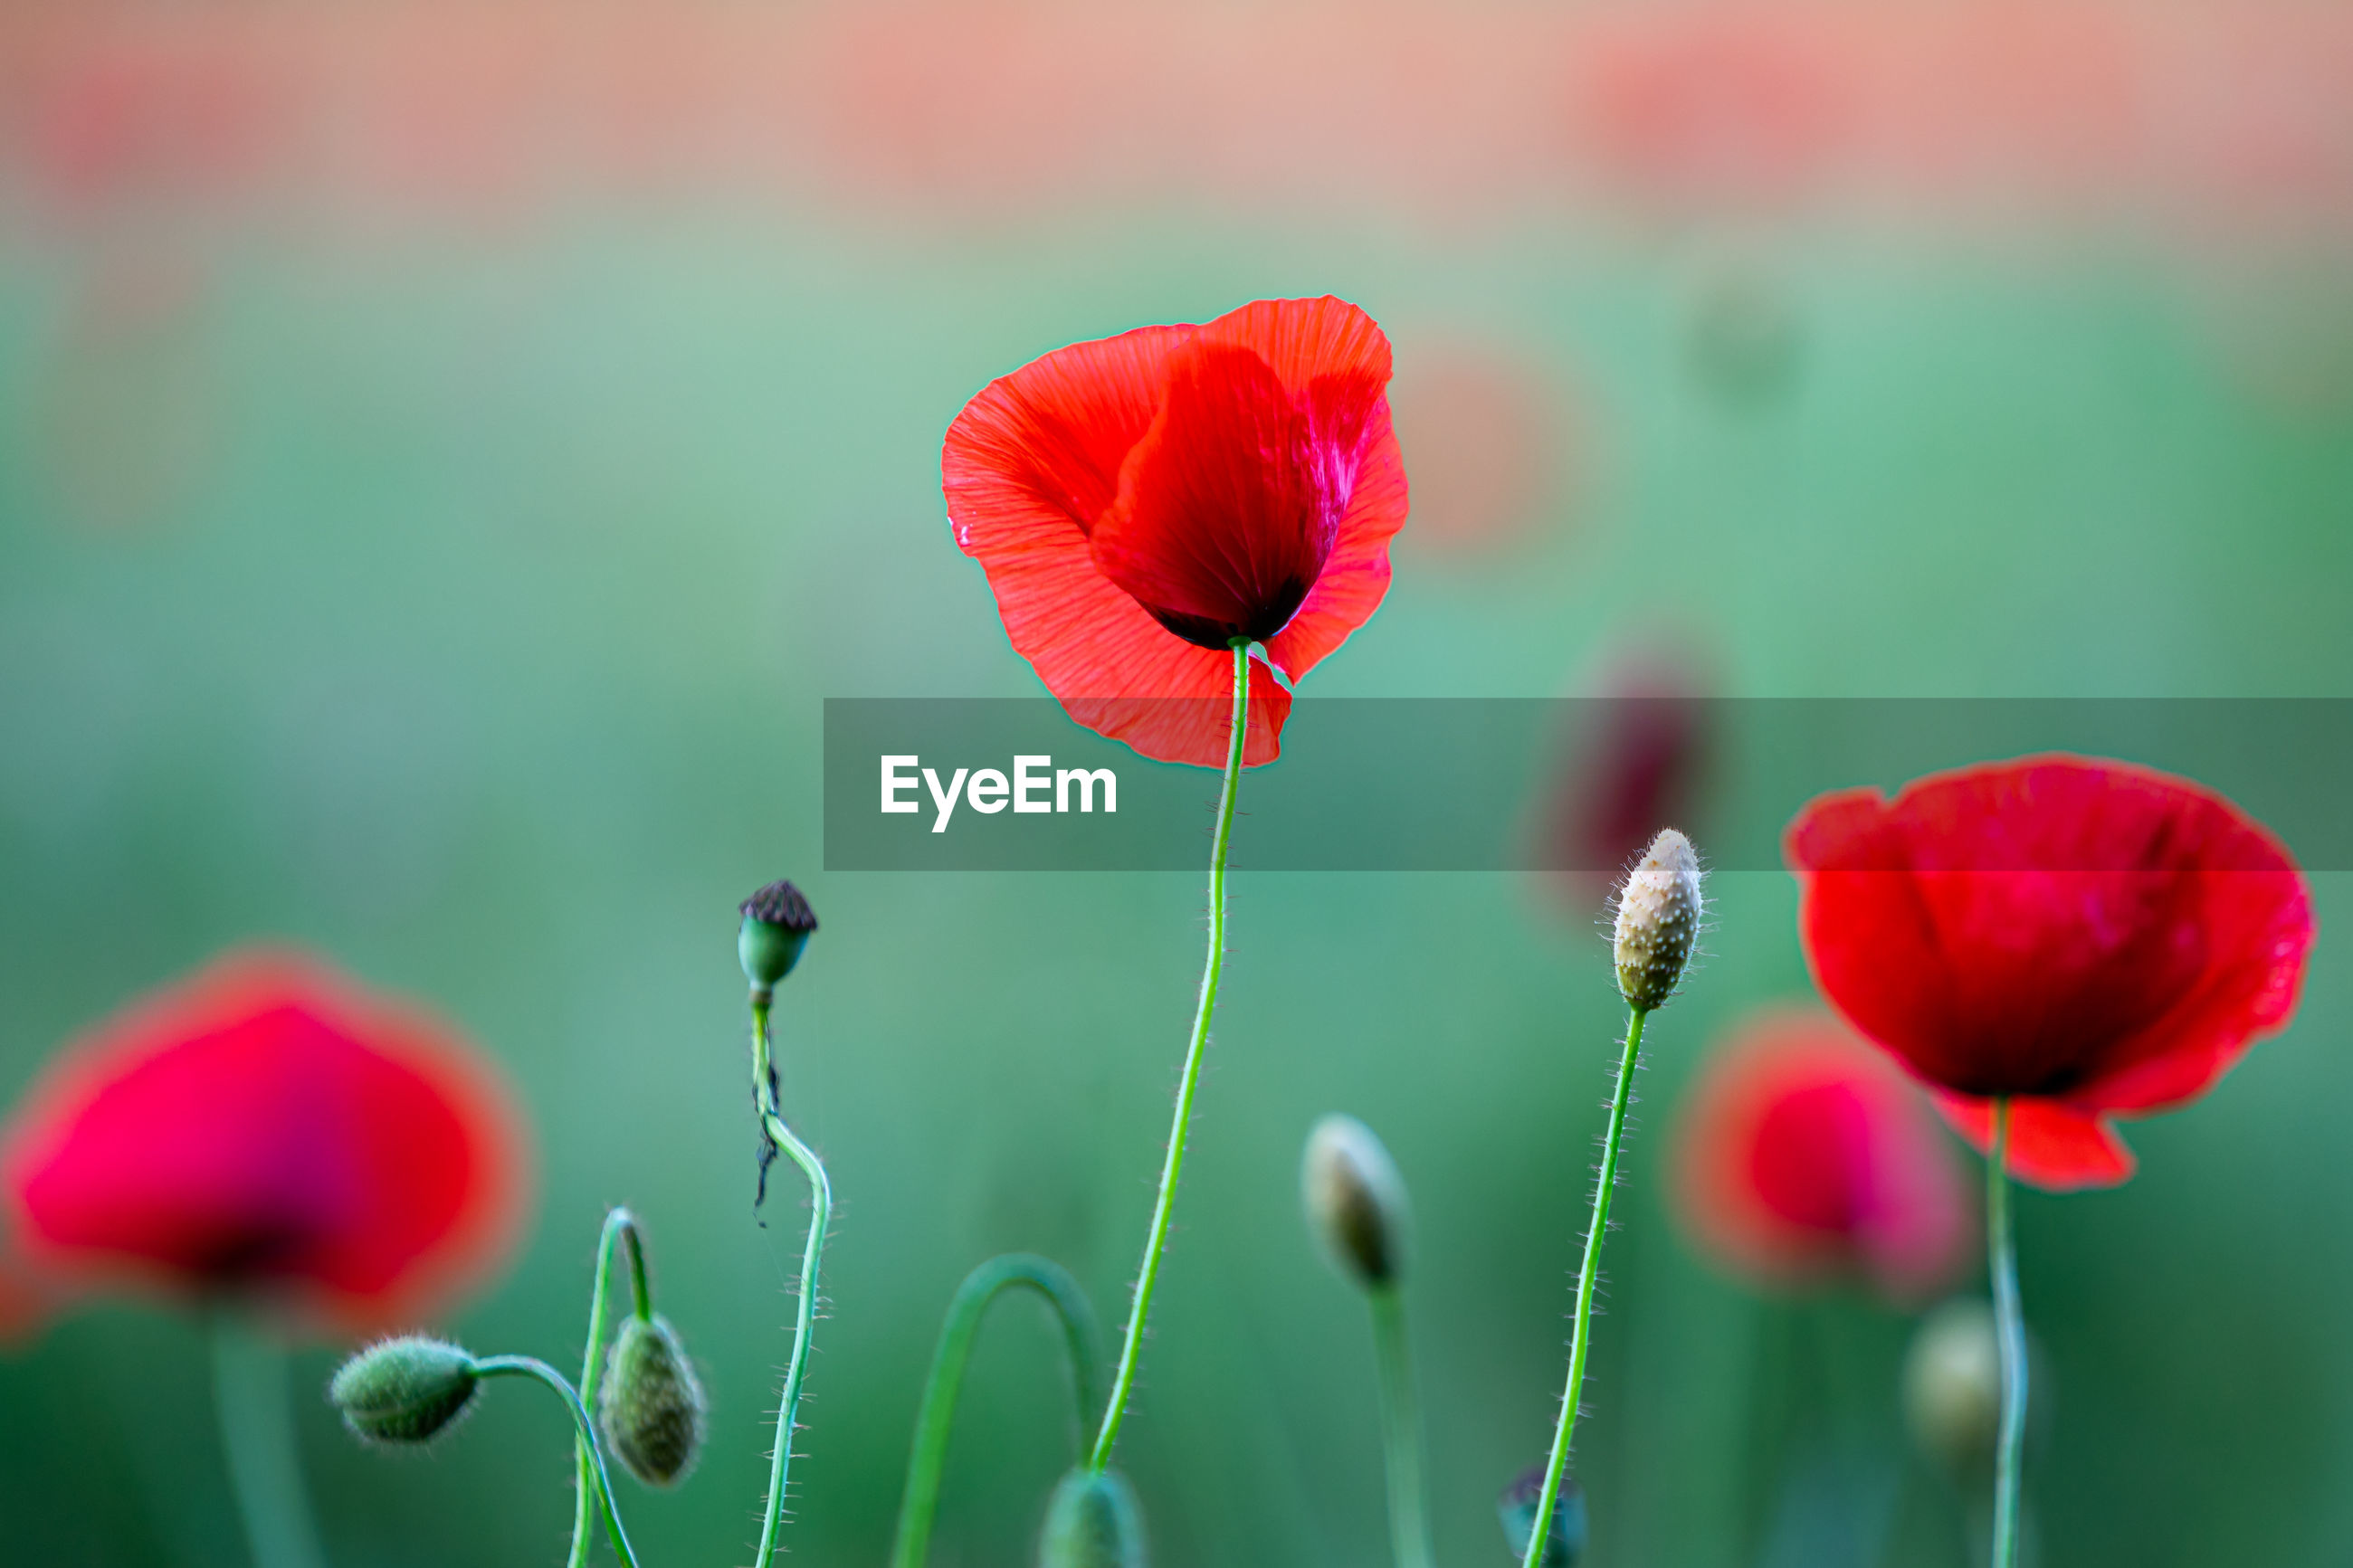 CLOSE-UP OF RED POPPY FLOWERS AGAINST PLANTS